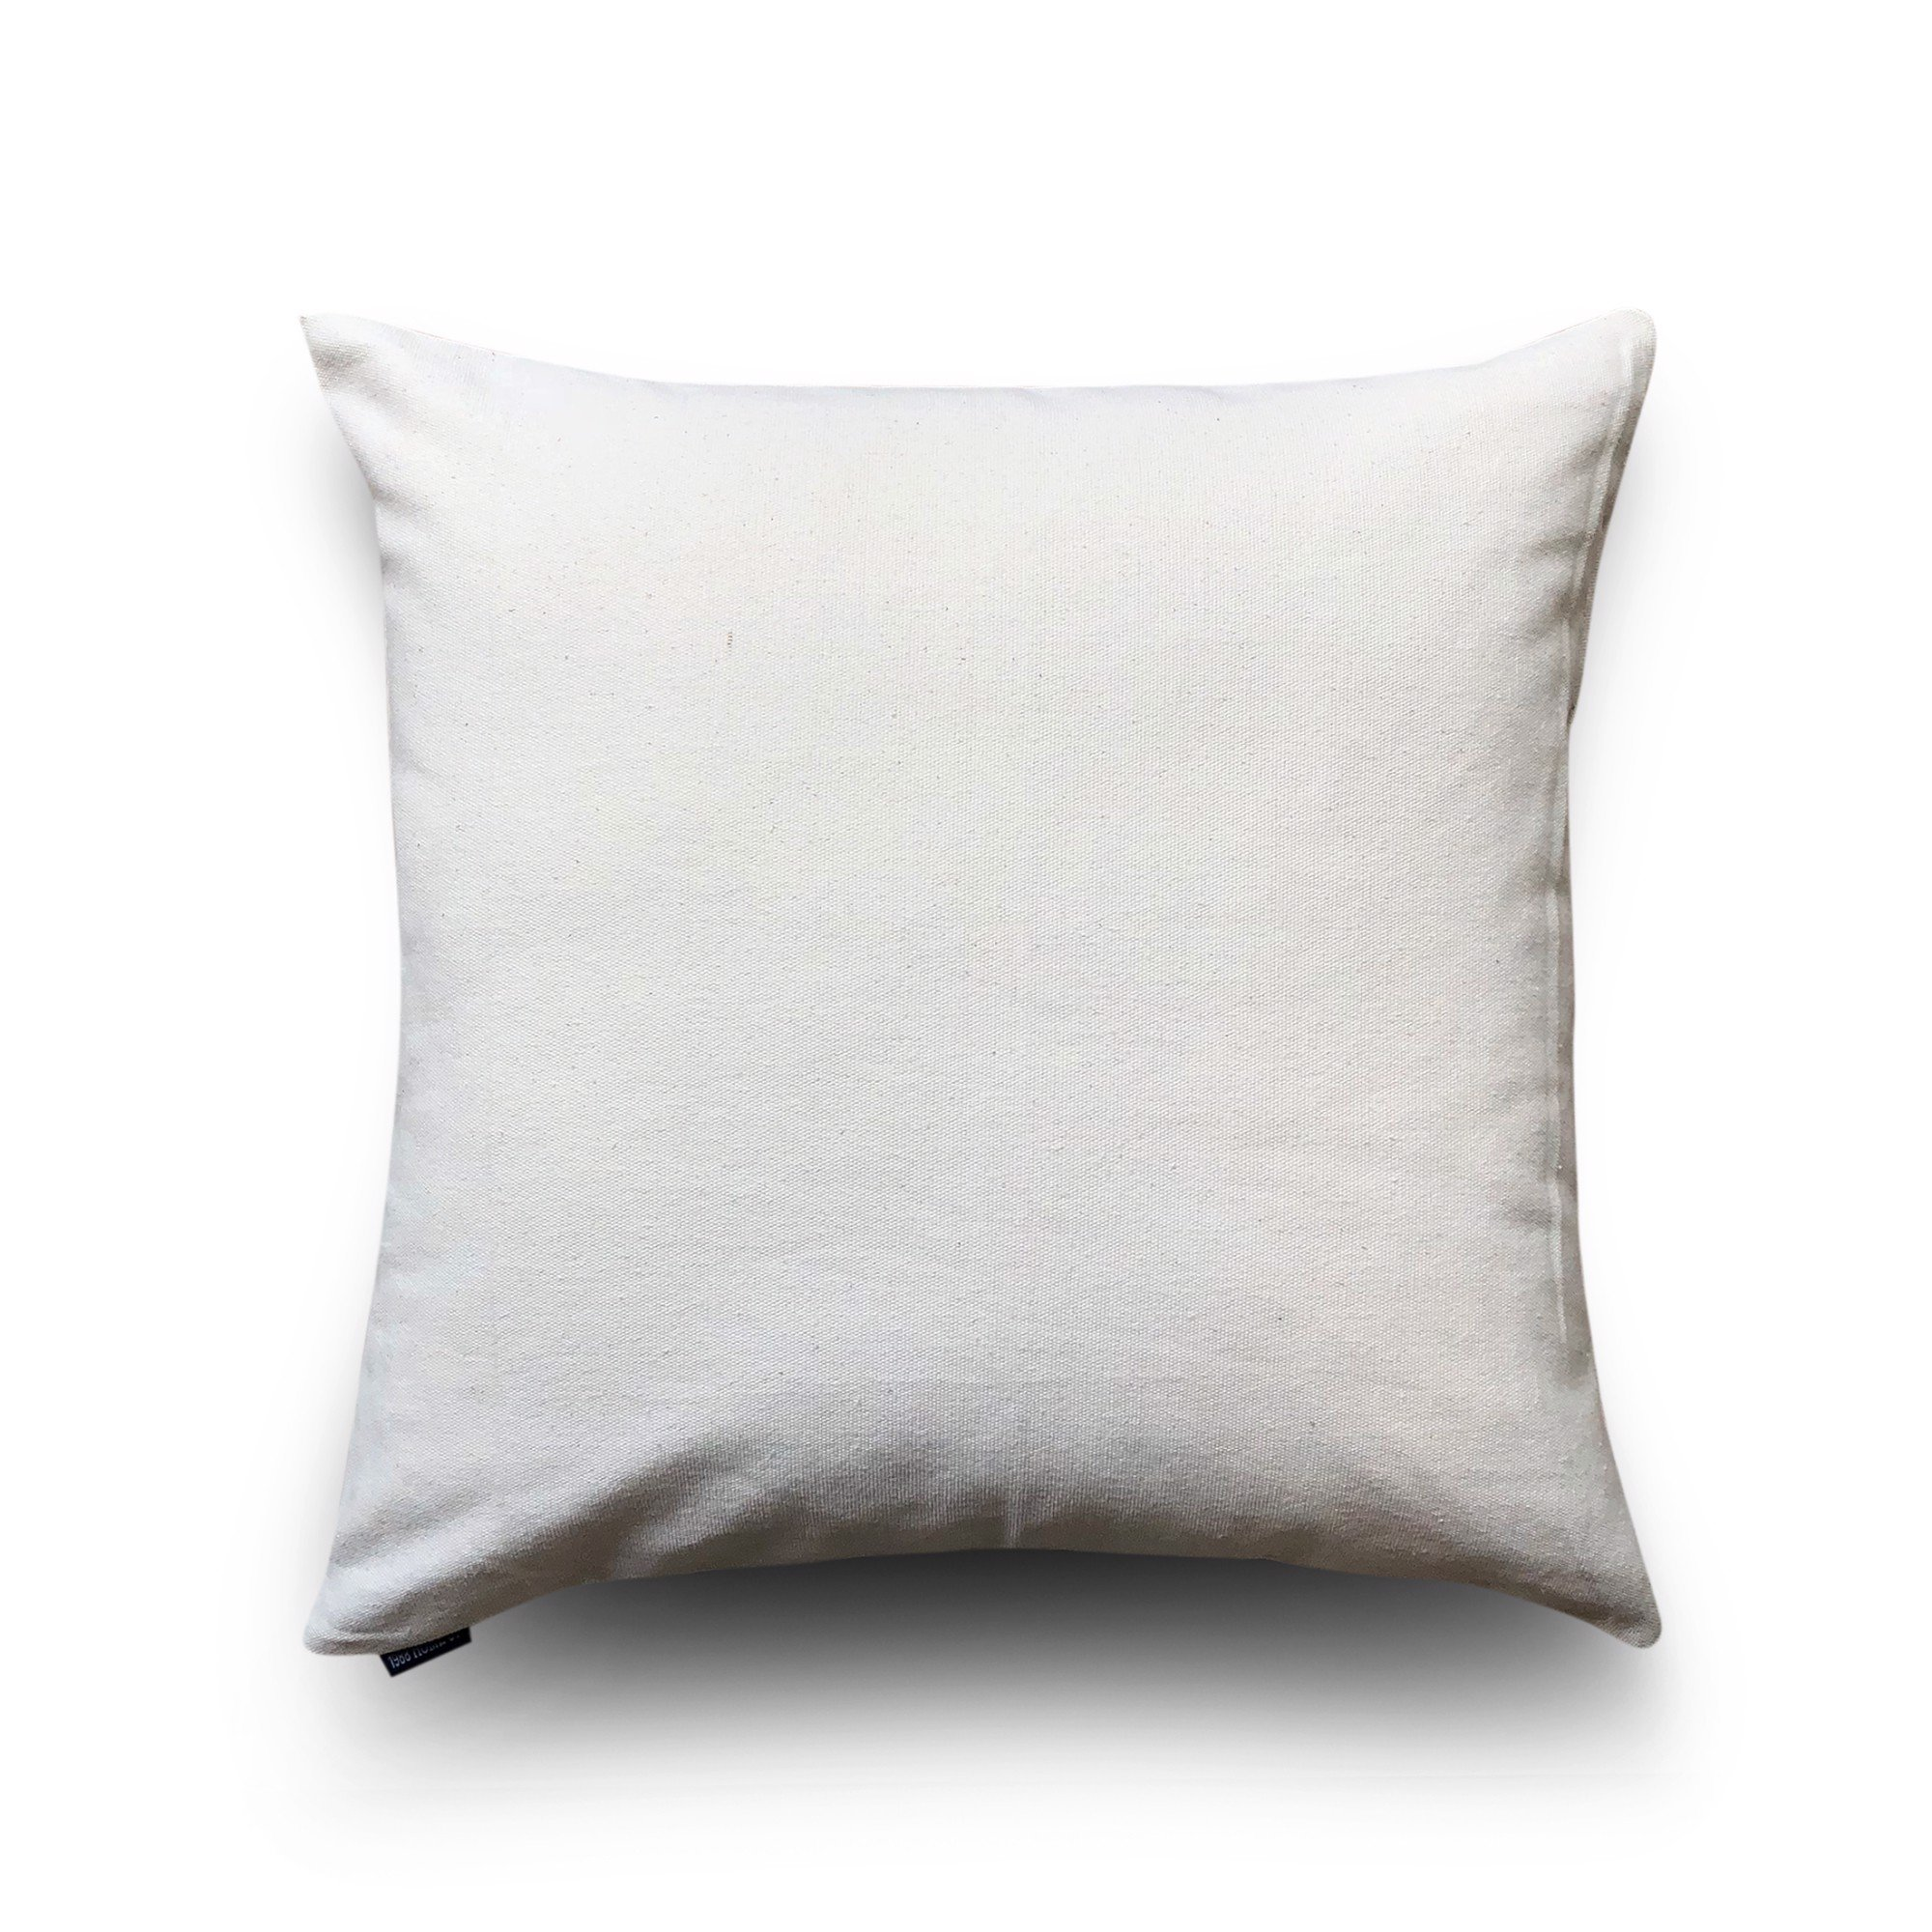 Cushion cover 03 Cream